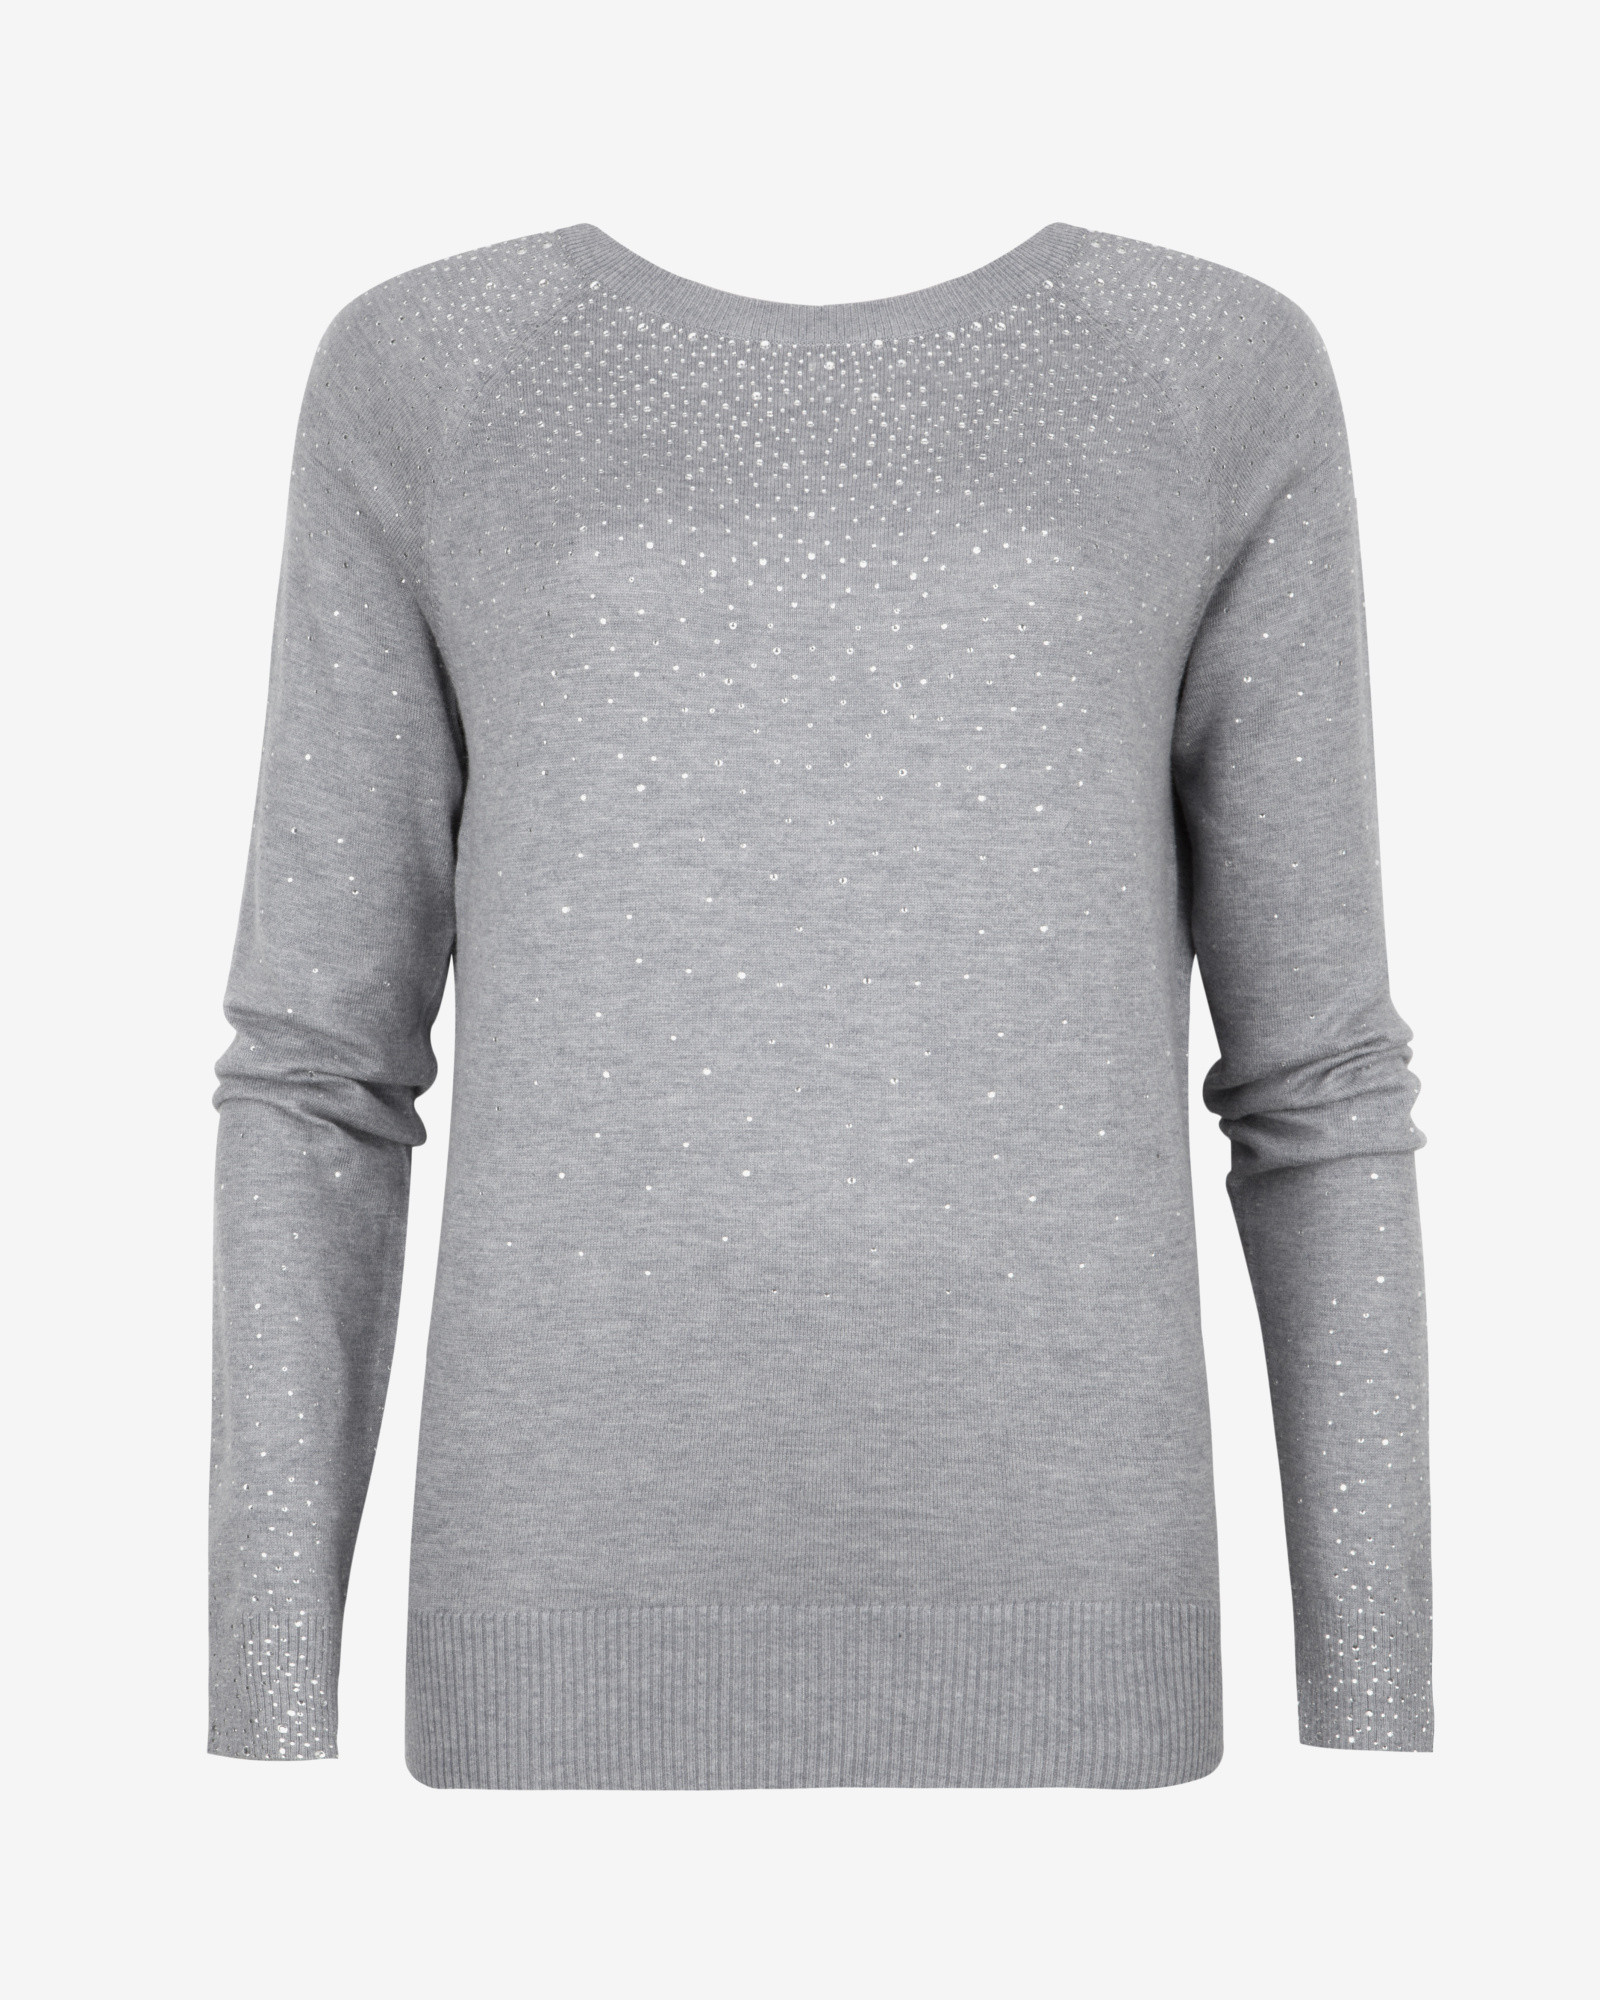 ff310bbf5477d Ted Baker Crystal Stud Sweater in Gray - Lyst